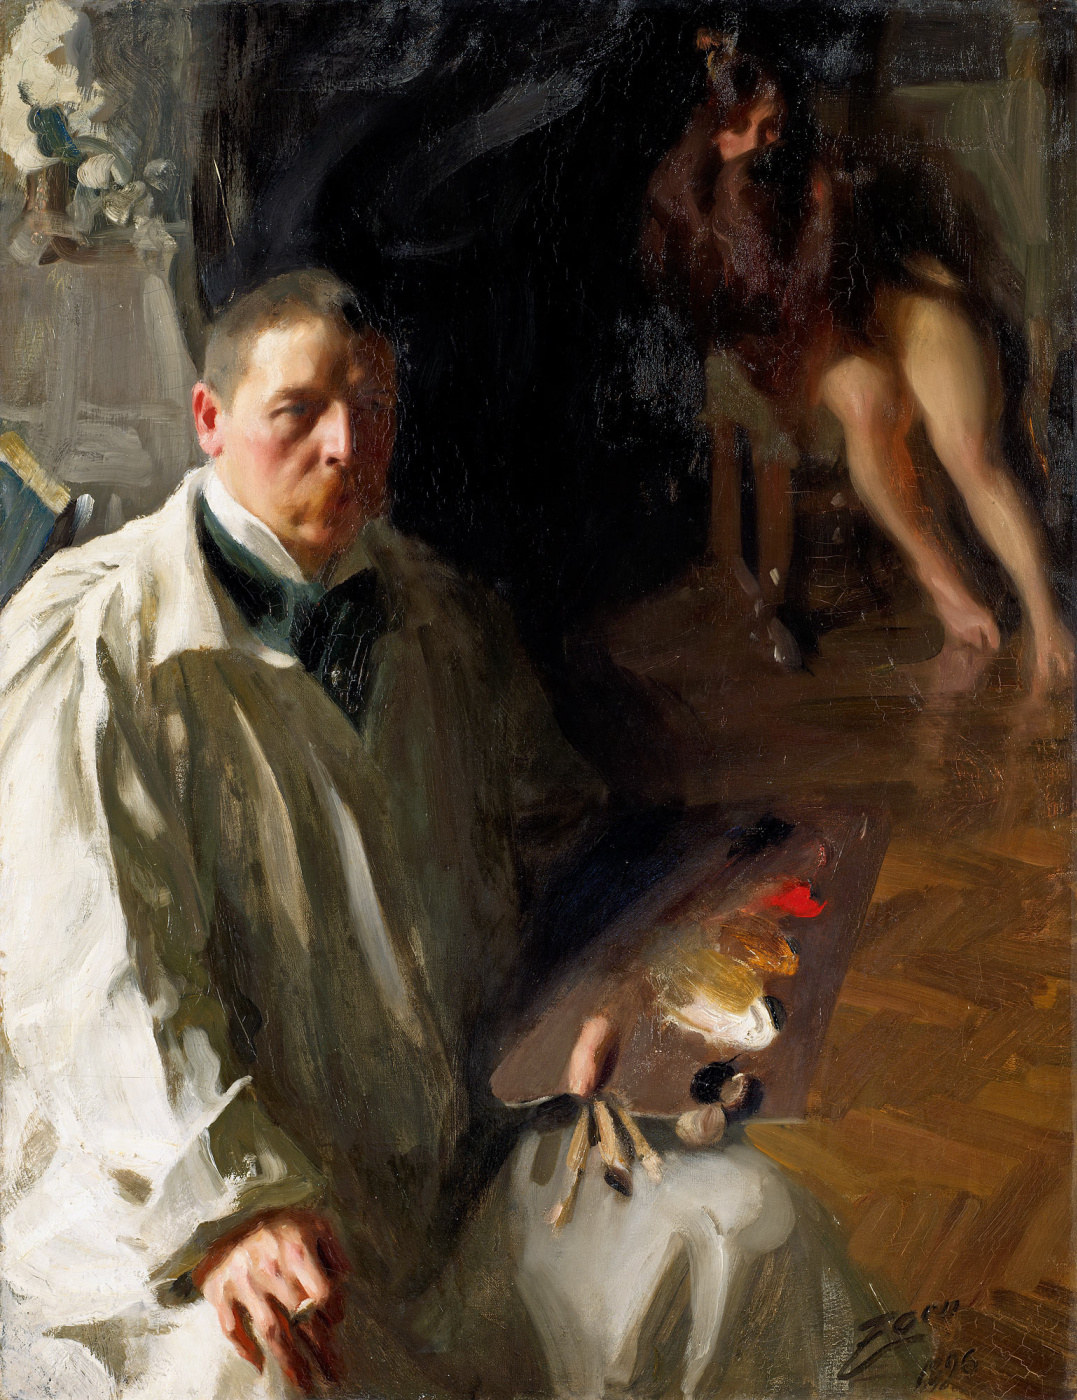 Anders Zorn. Self-portrait with model